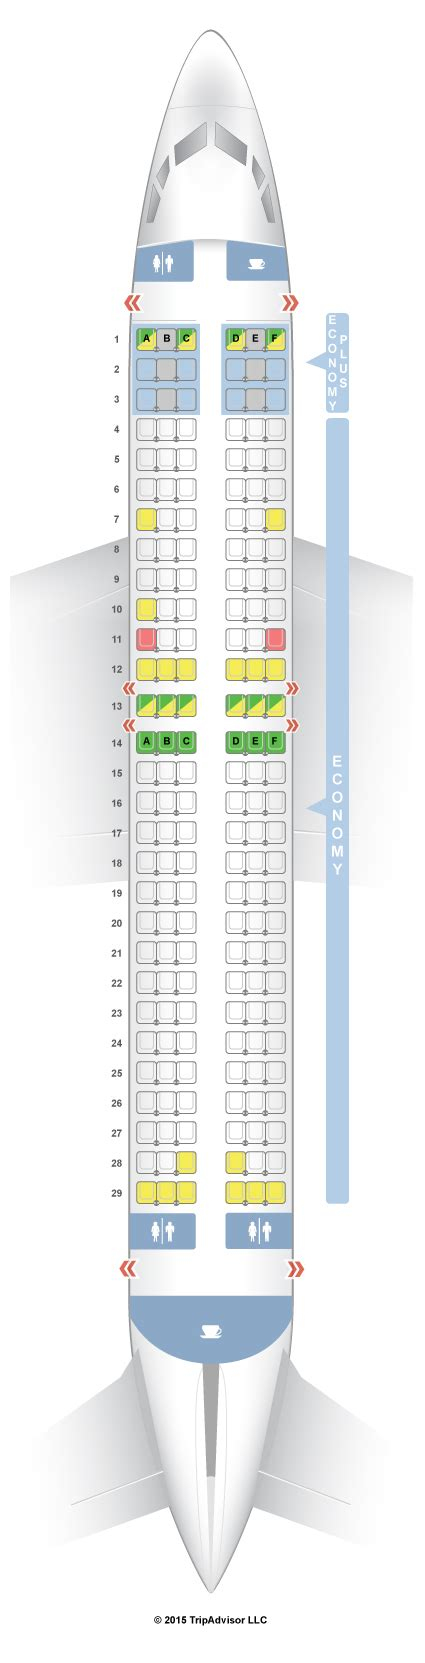 boeing 737 plan sieges seatguru seat map westjet boeing 737 800 738